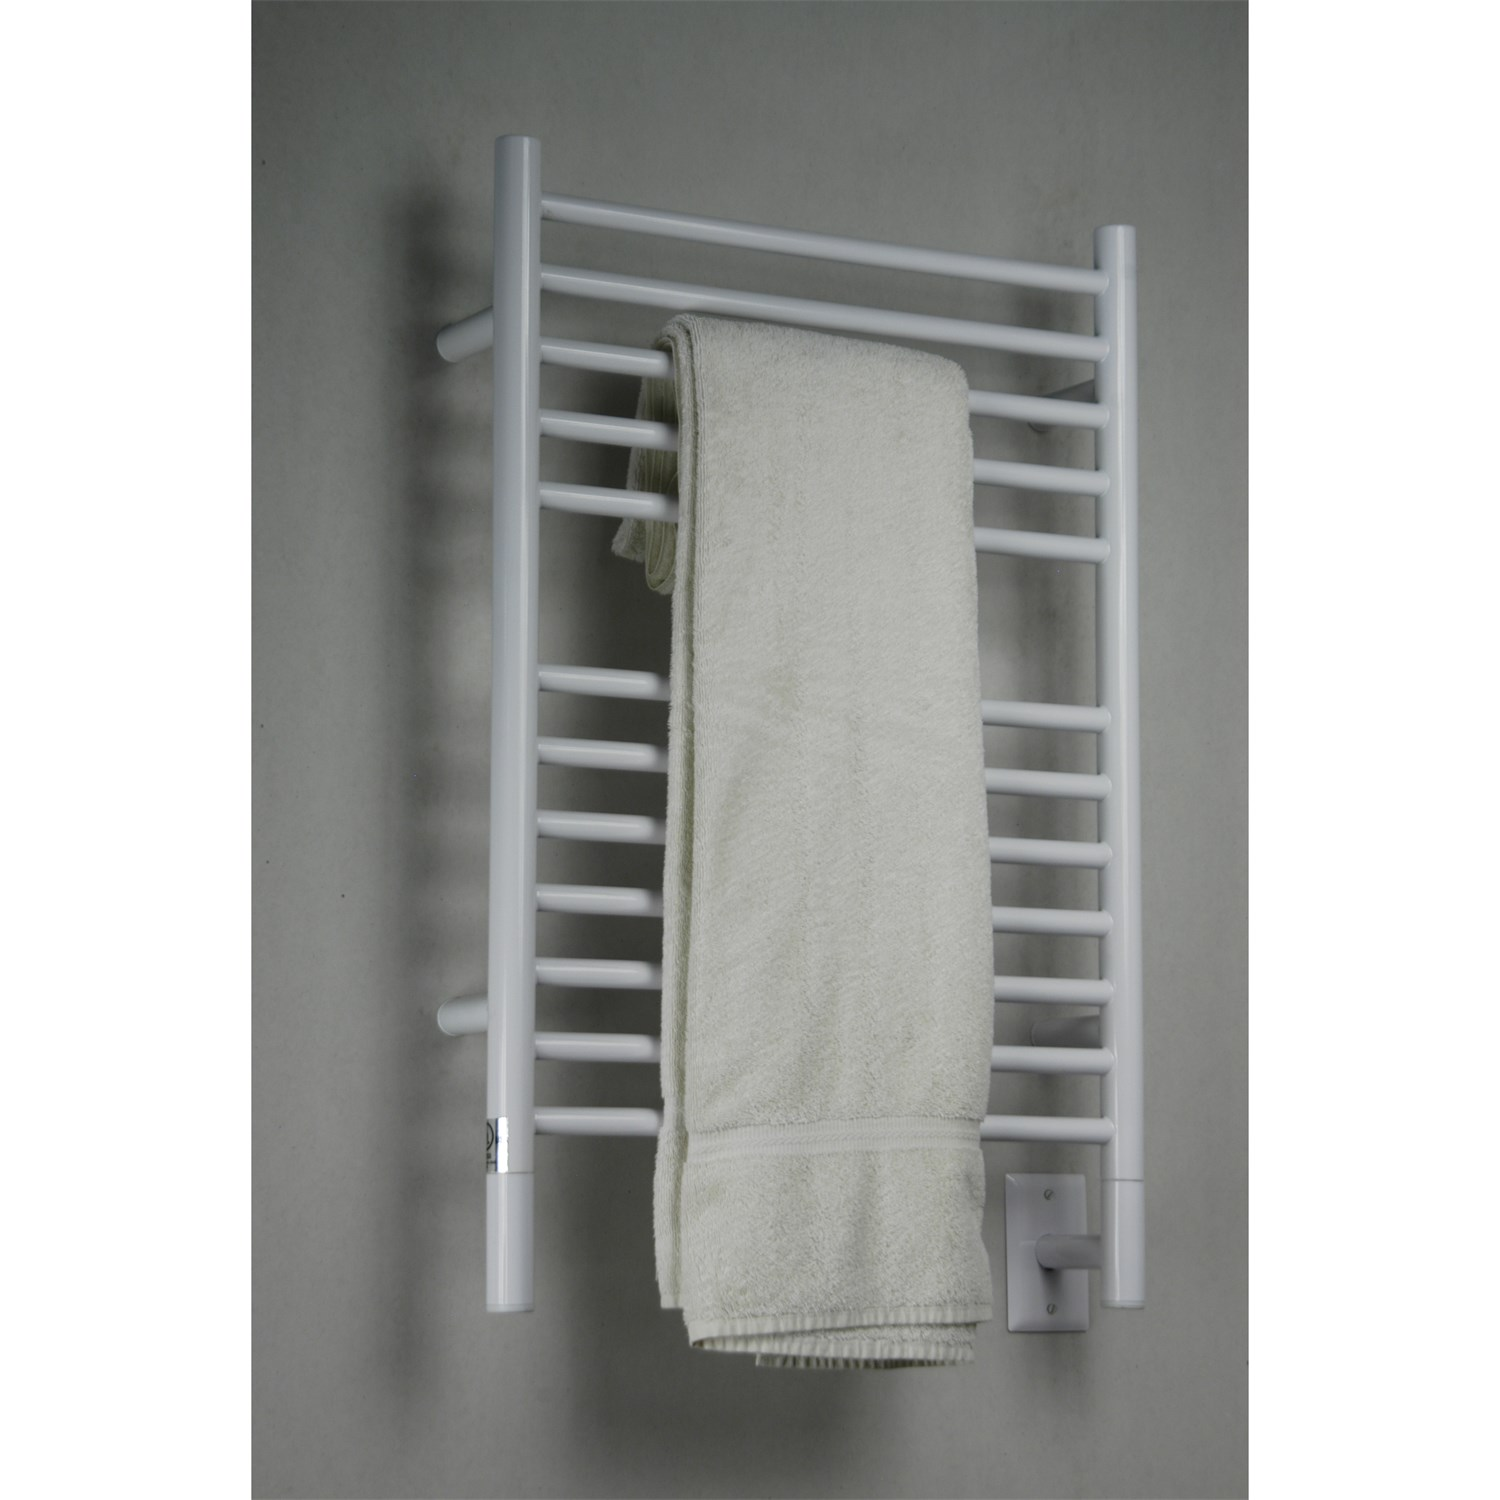 Towel Warmer Brushed Nickel | Home Depot Towel Rack | Amba Towel Warmers